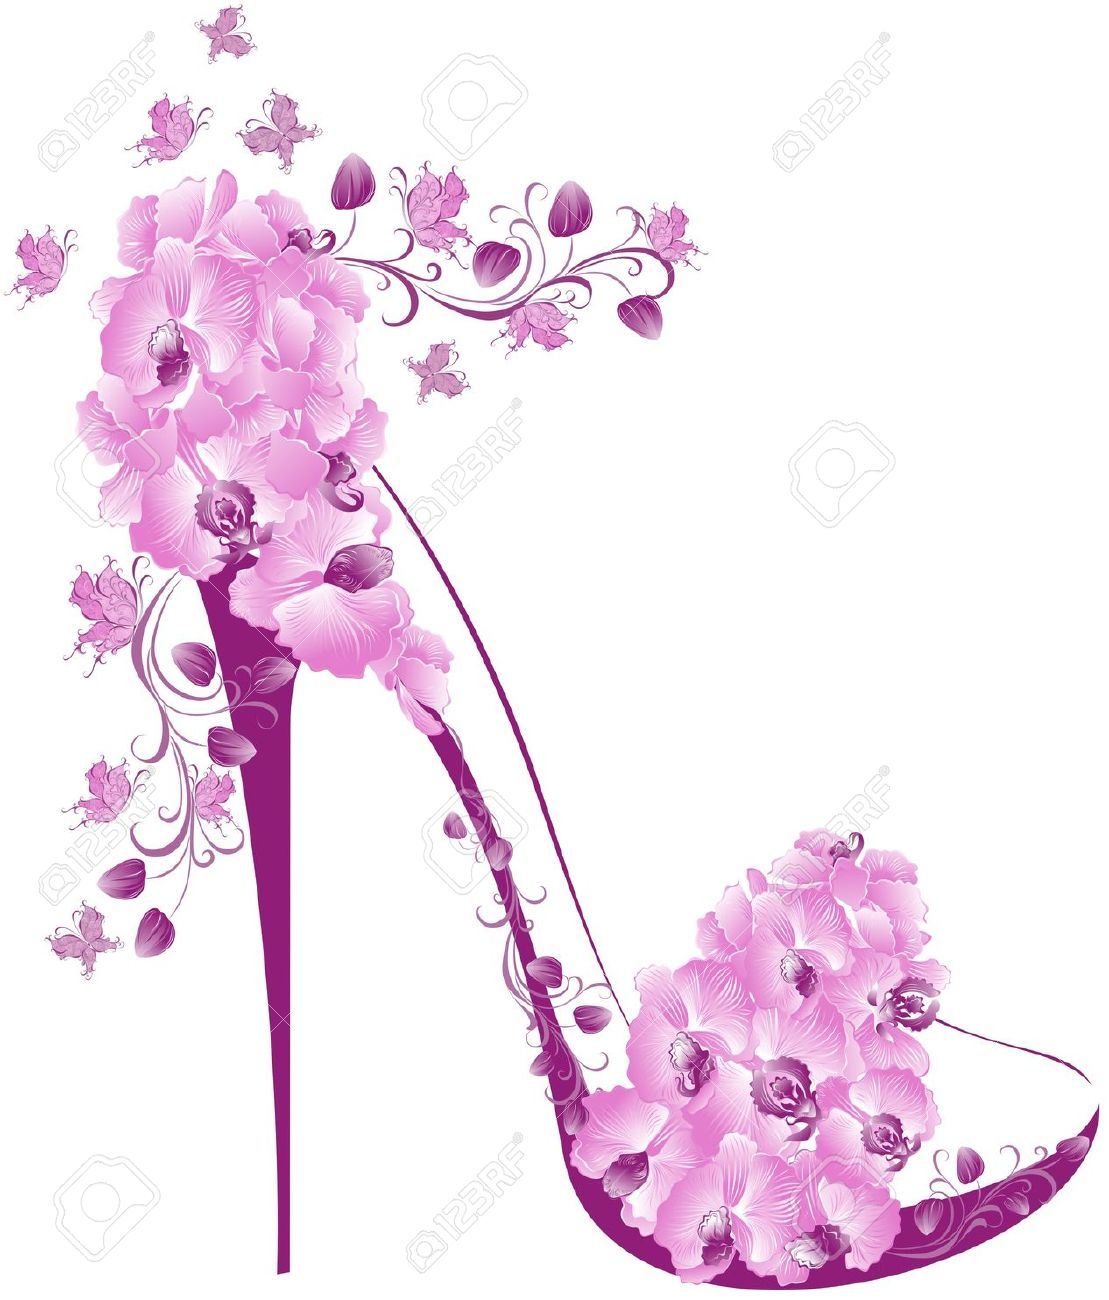 Pink High Heel Shoes Clipart images.